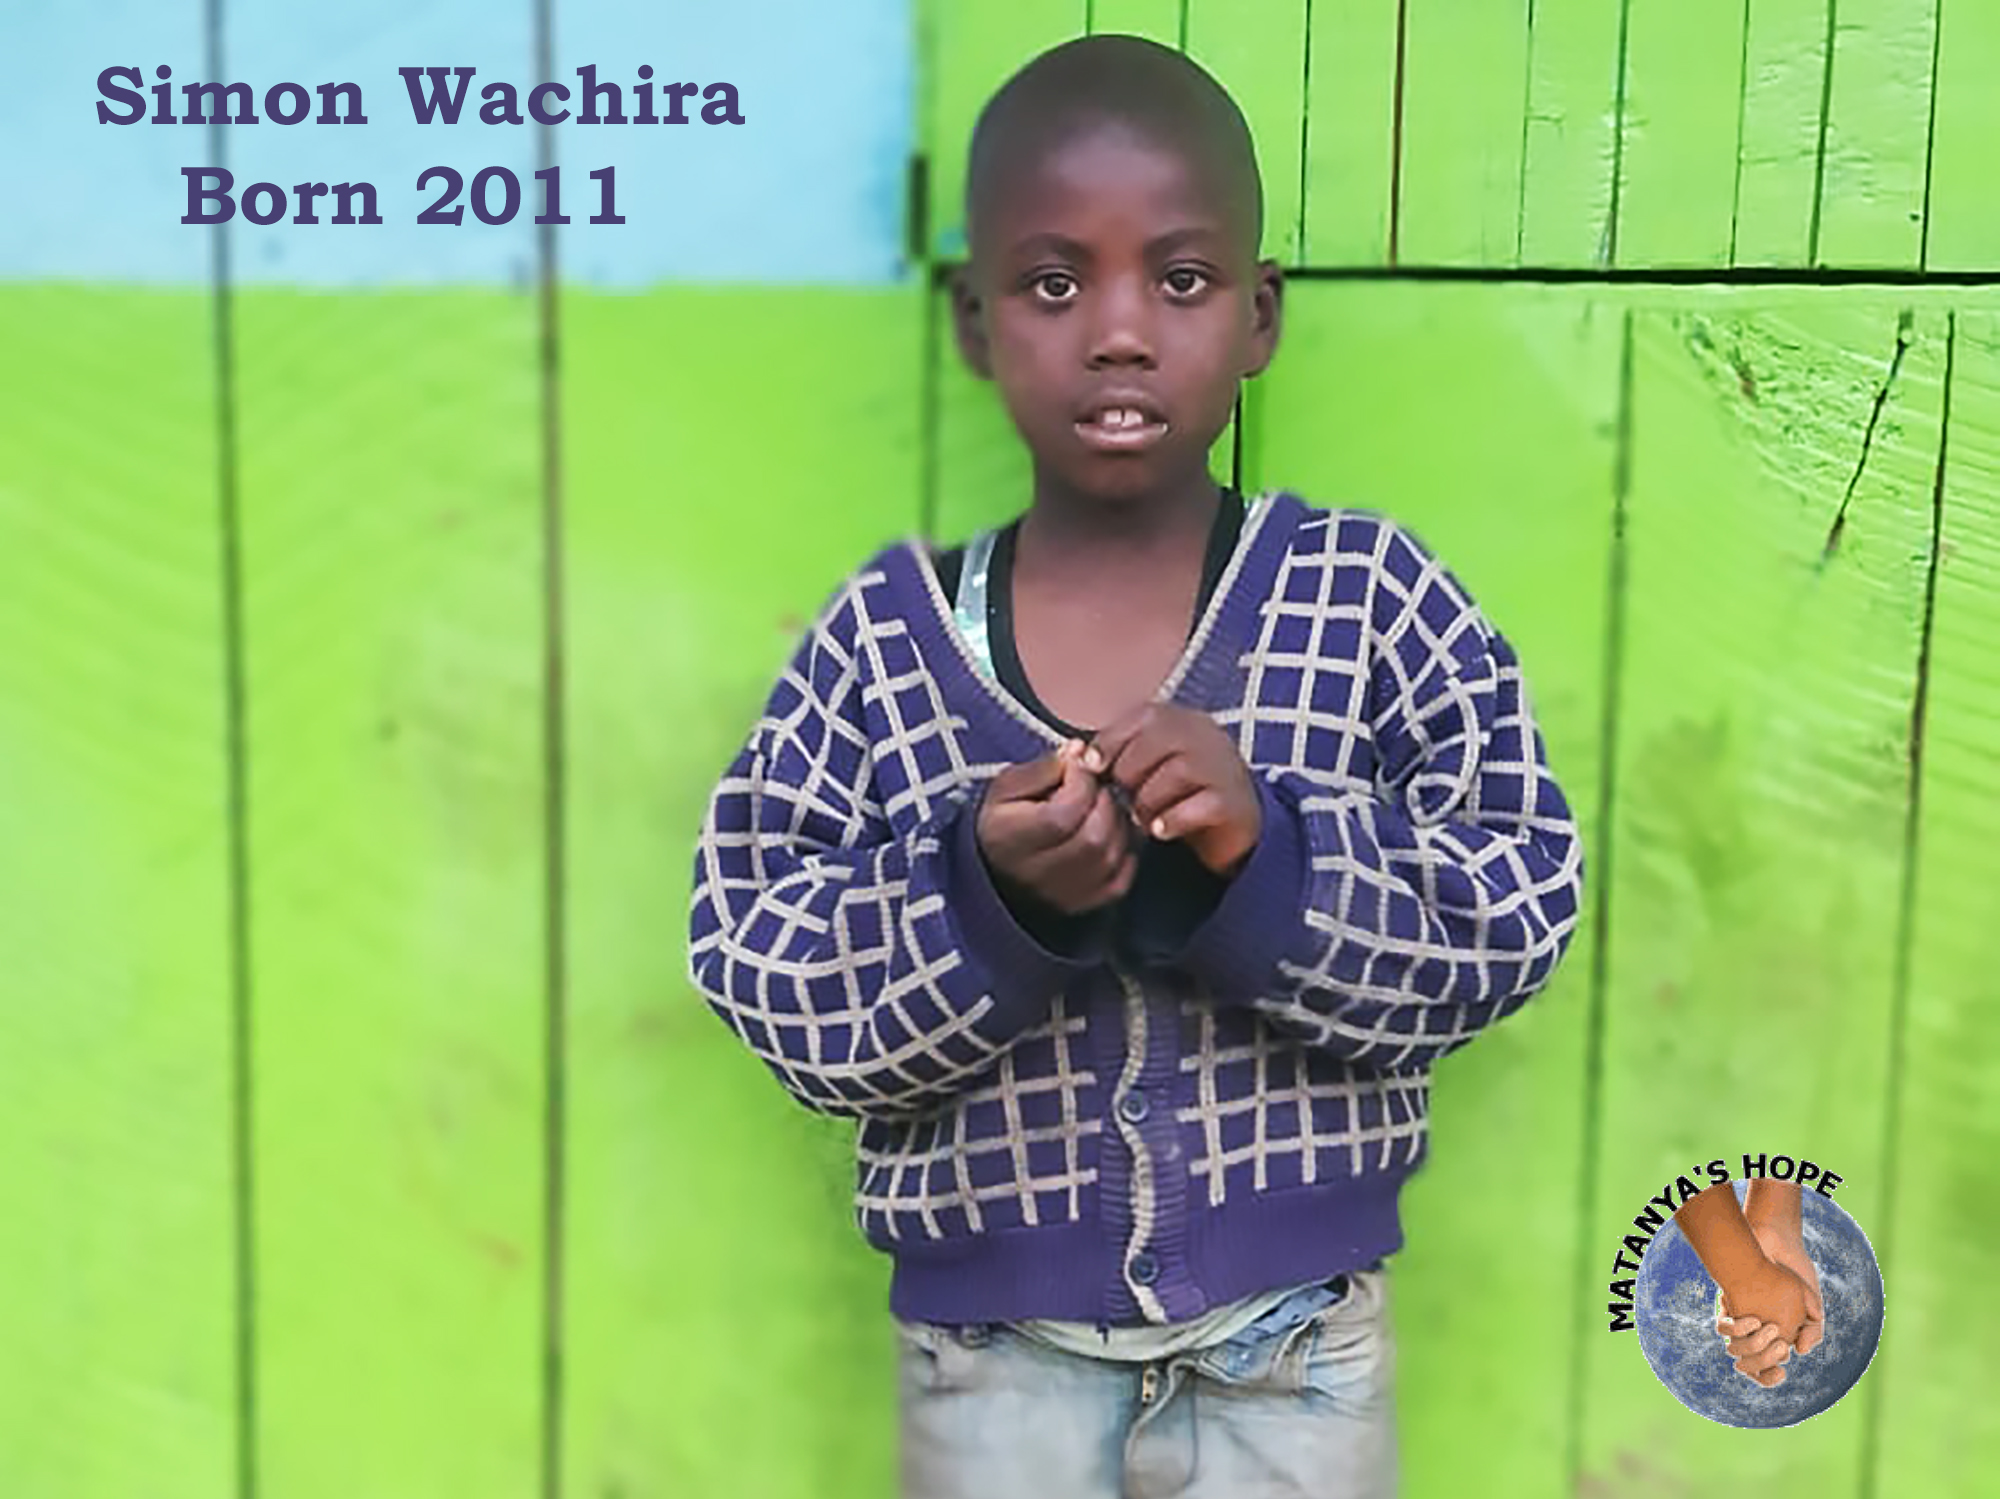 Simon is hungry.  He watches over his 3 siblings as they fend for food on the streets.  You can HELP Simon today by donating funds to feed him and send him to school.